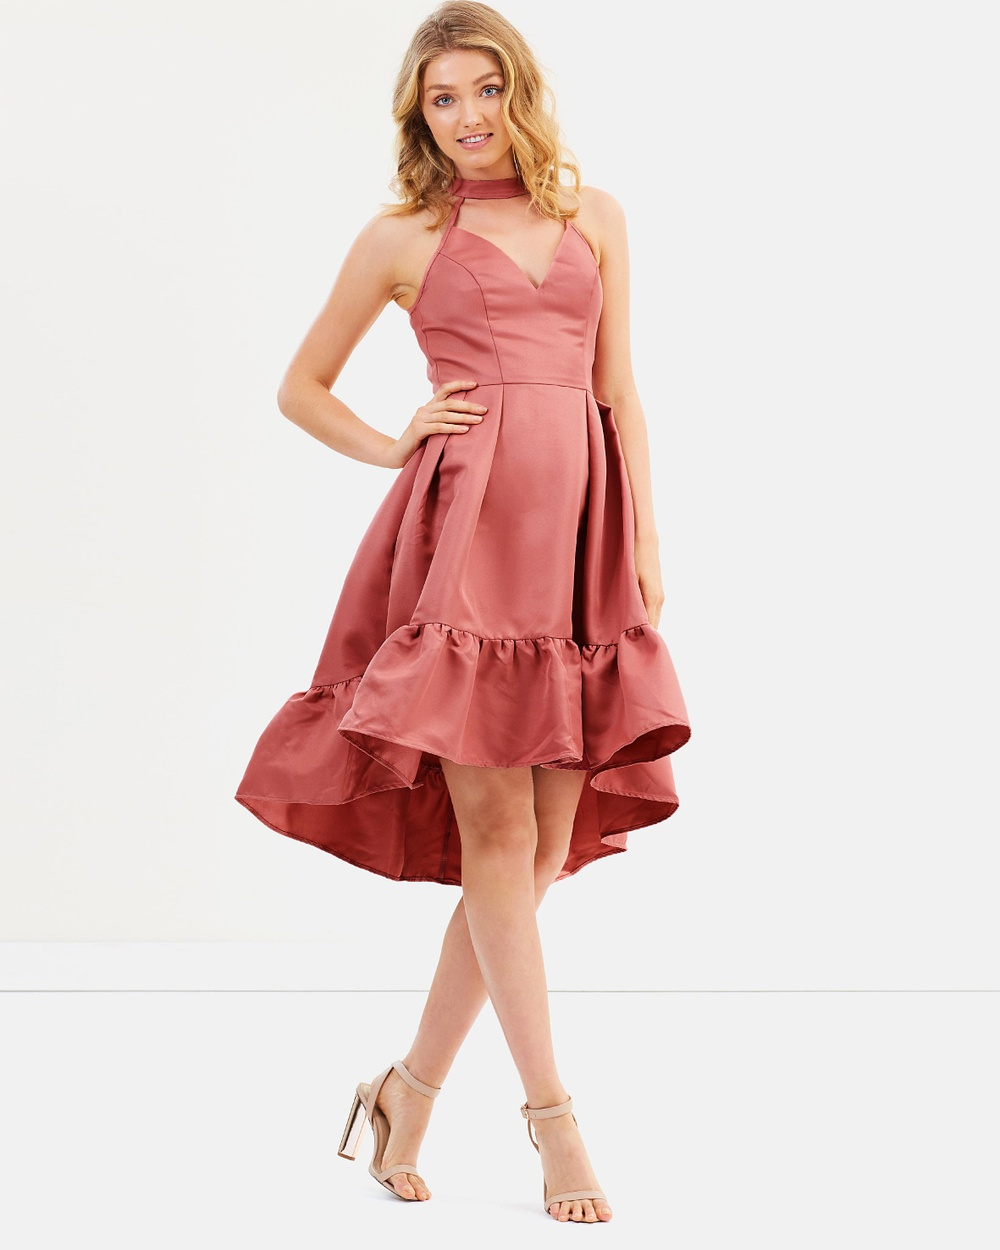 Chi Chi London Shannen Dress Dresses Pink Shannen Dress